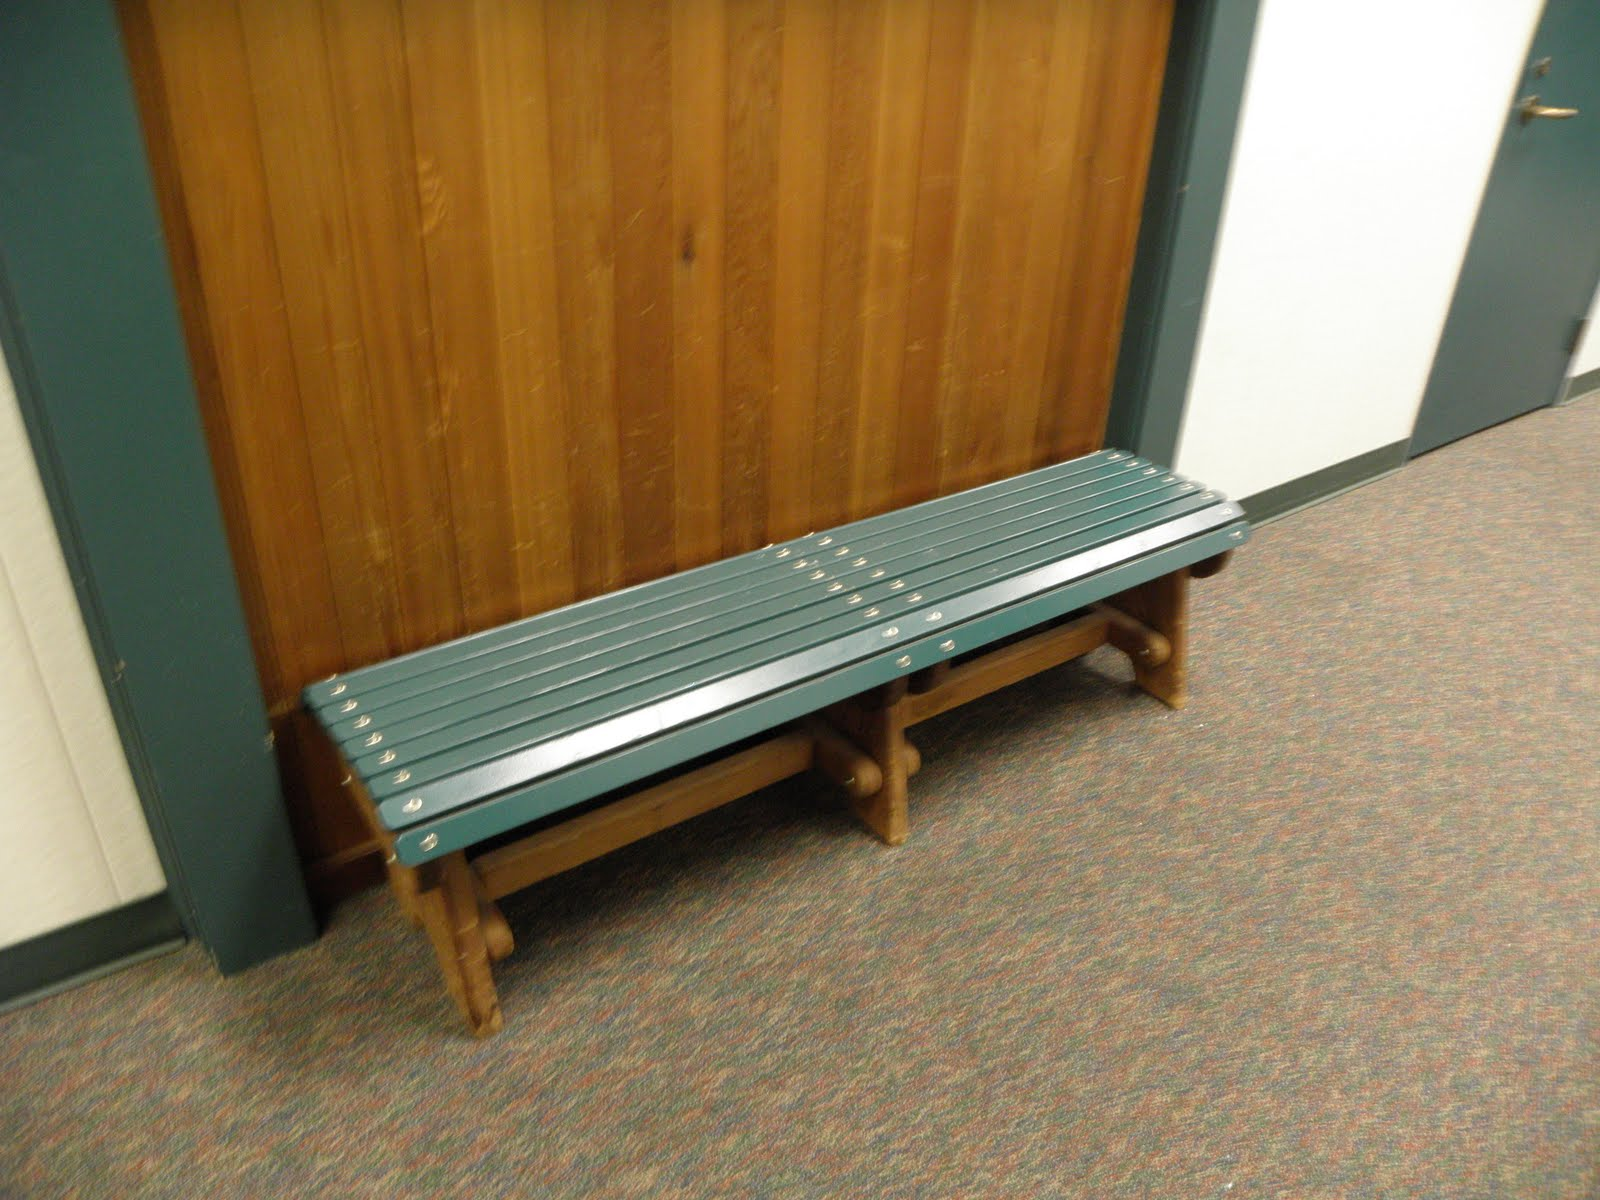 Benches4paulie Backless Wooden Slat Curved Bench